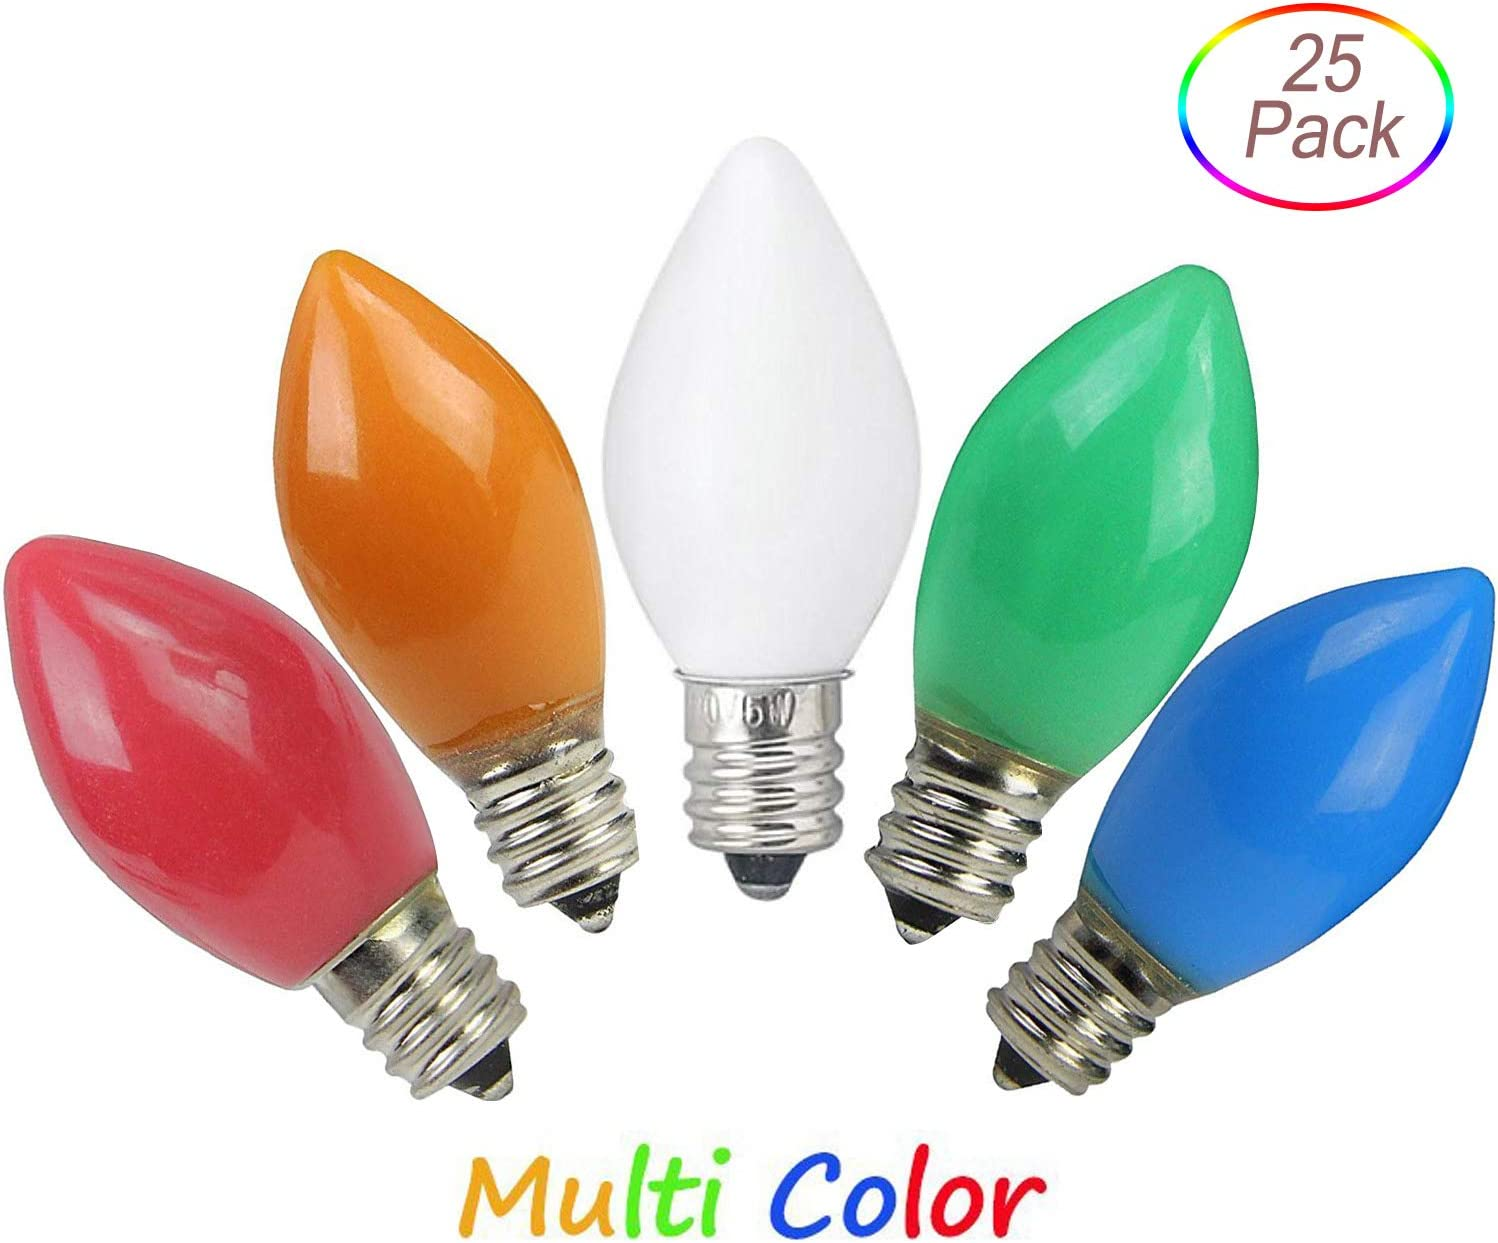 25 Pack C7 Outdoor Christmas Replacement Bulbs C7//E12 Candelabra Base